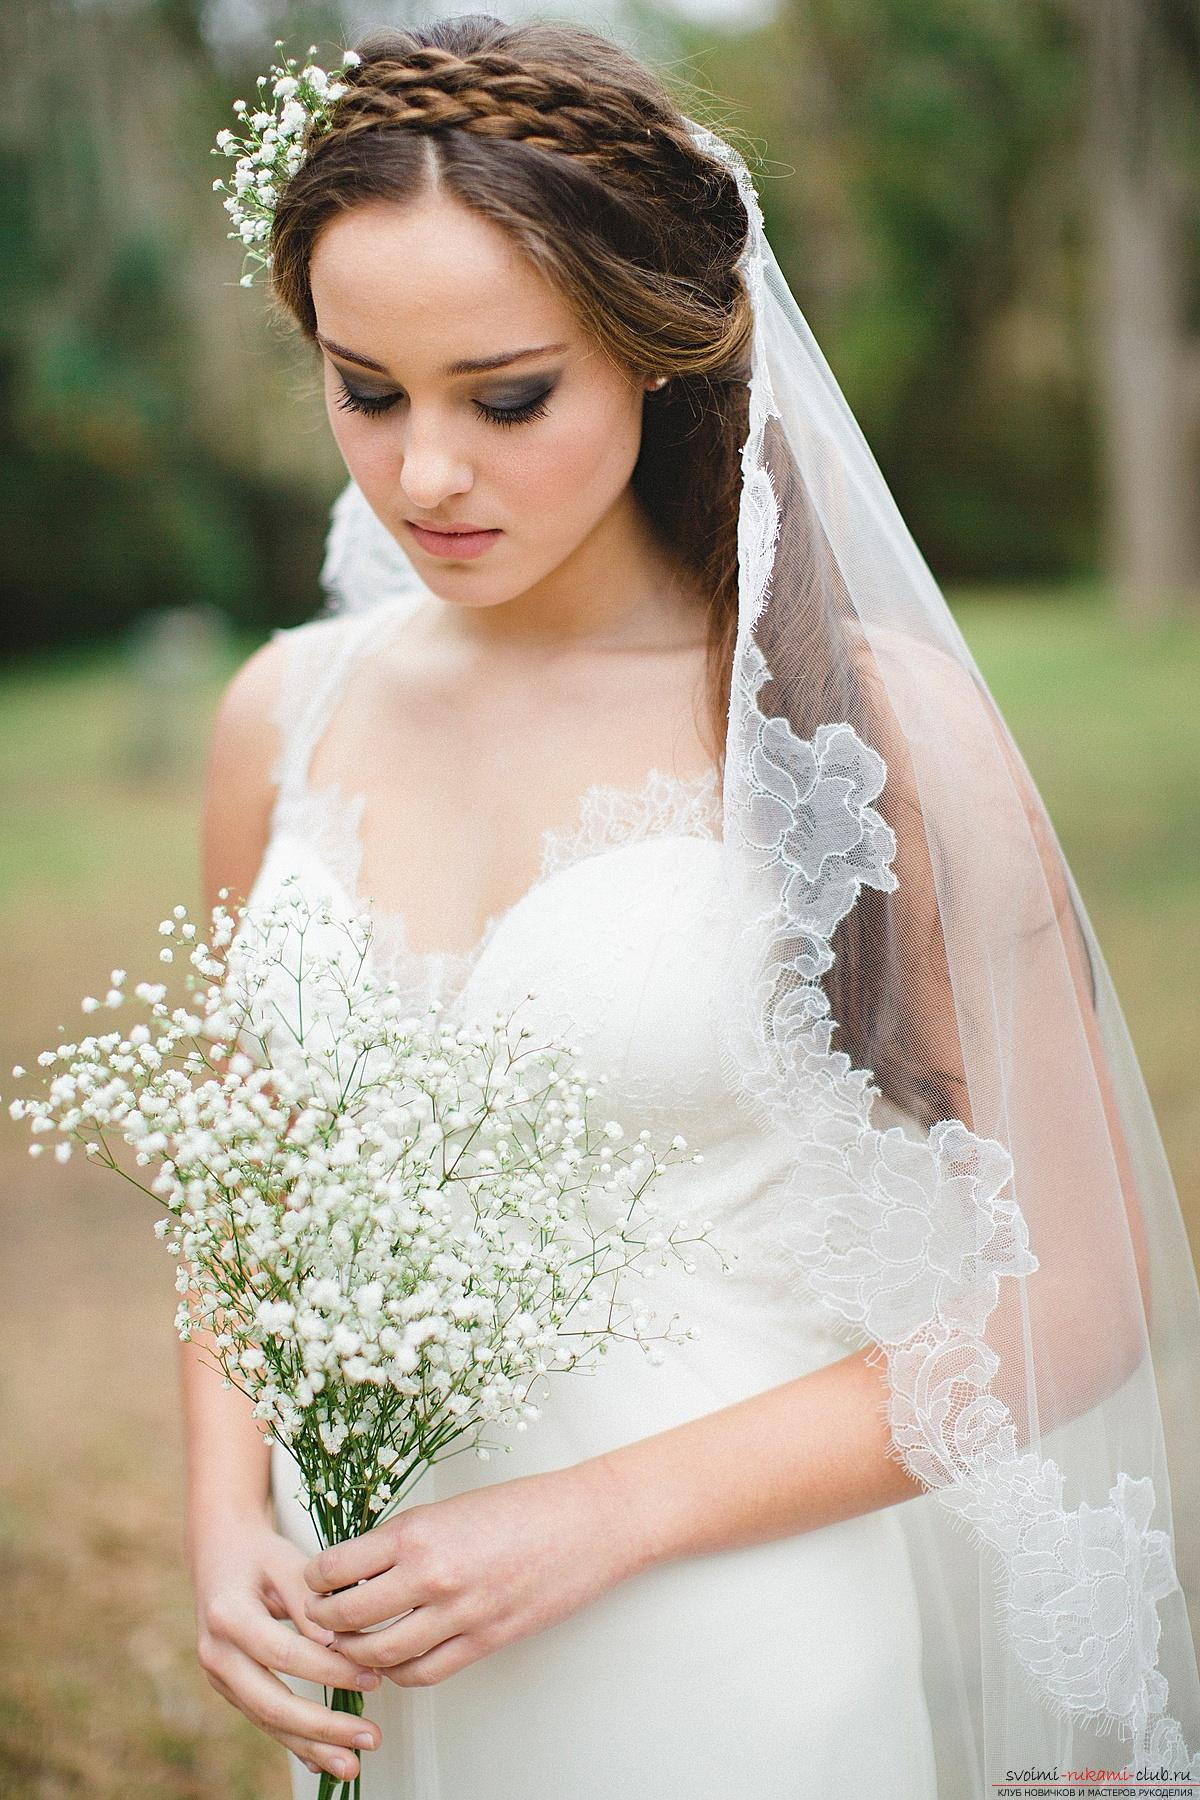 Hairstyles for the bride for the wedding with the veil. Photo №6